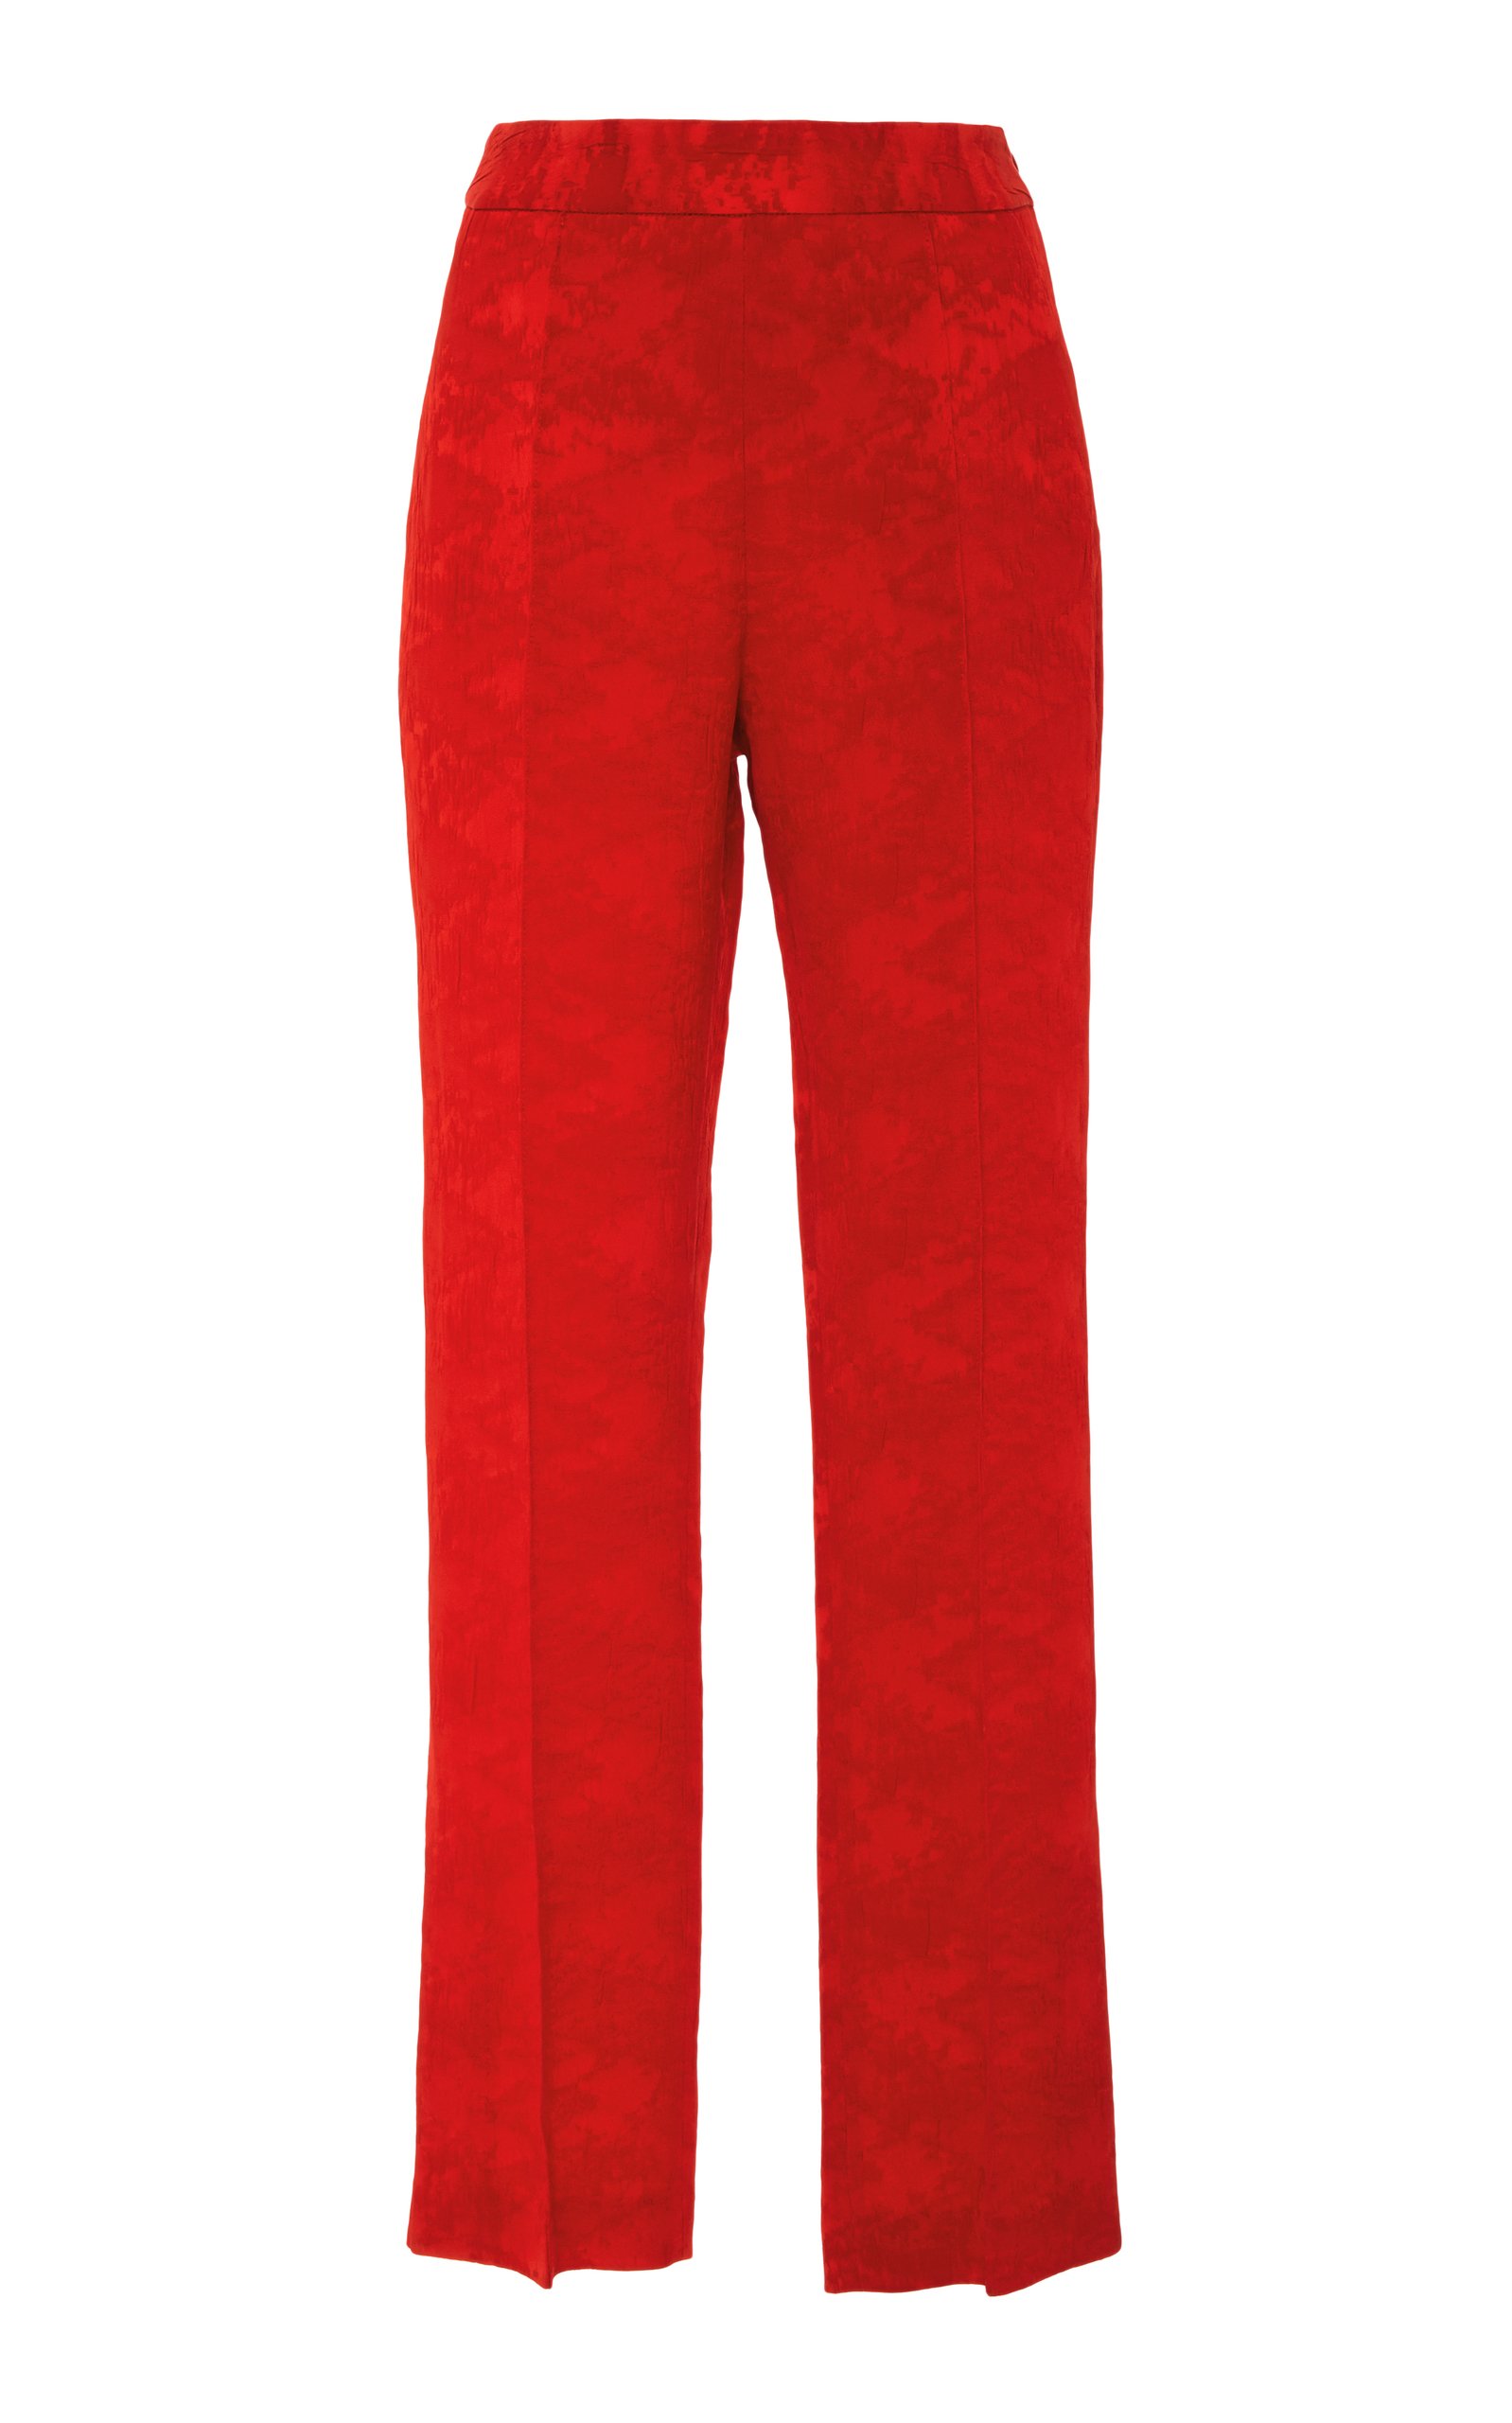 Oboe Jacquard Pant Rosie Assoulin Discount Limited Edition rRyX9MZ